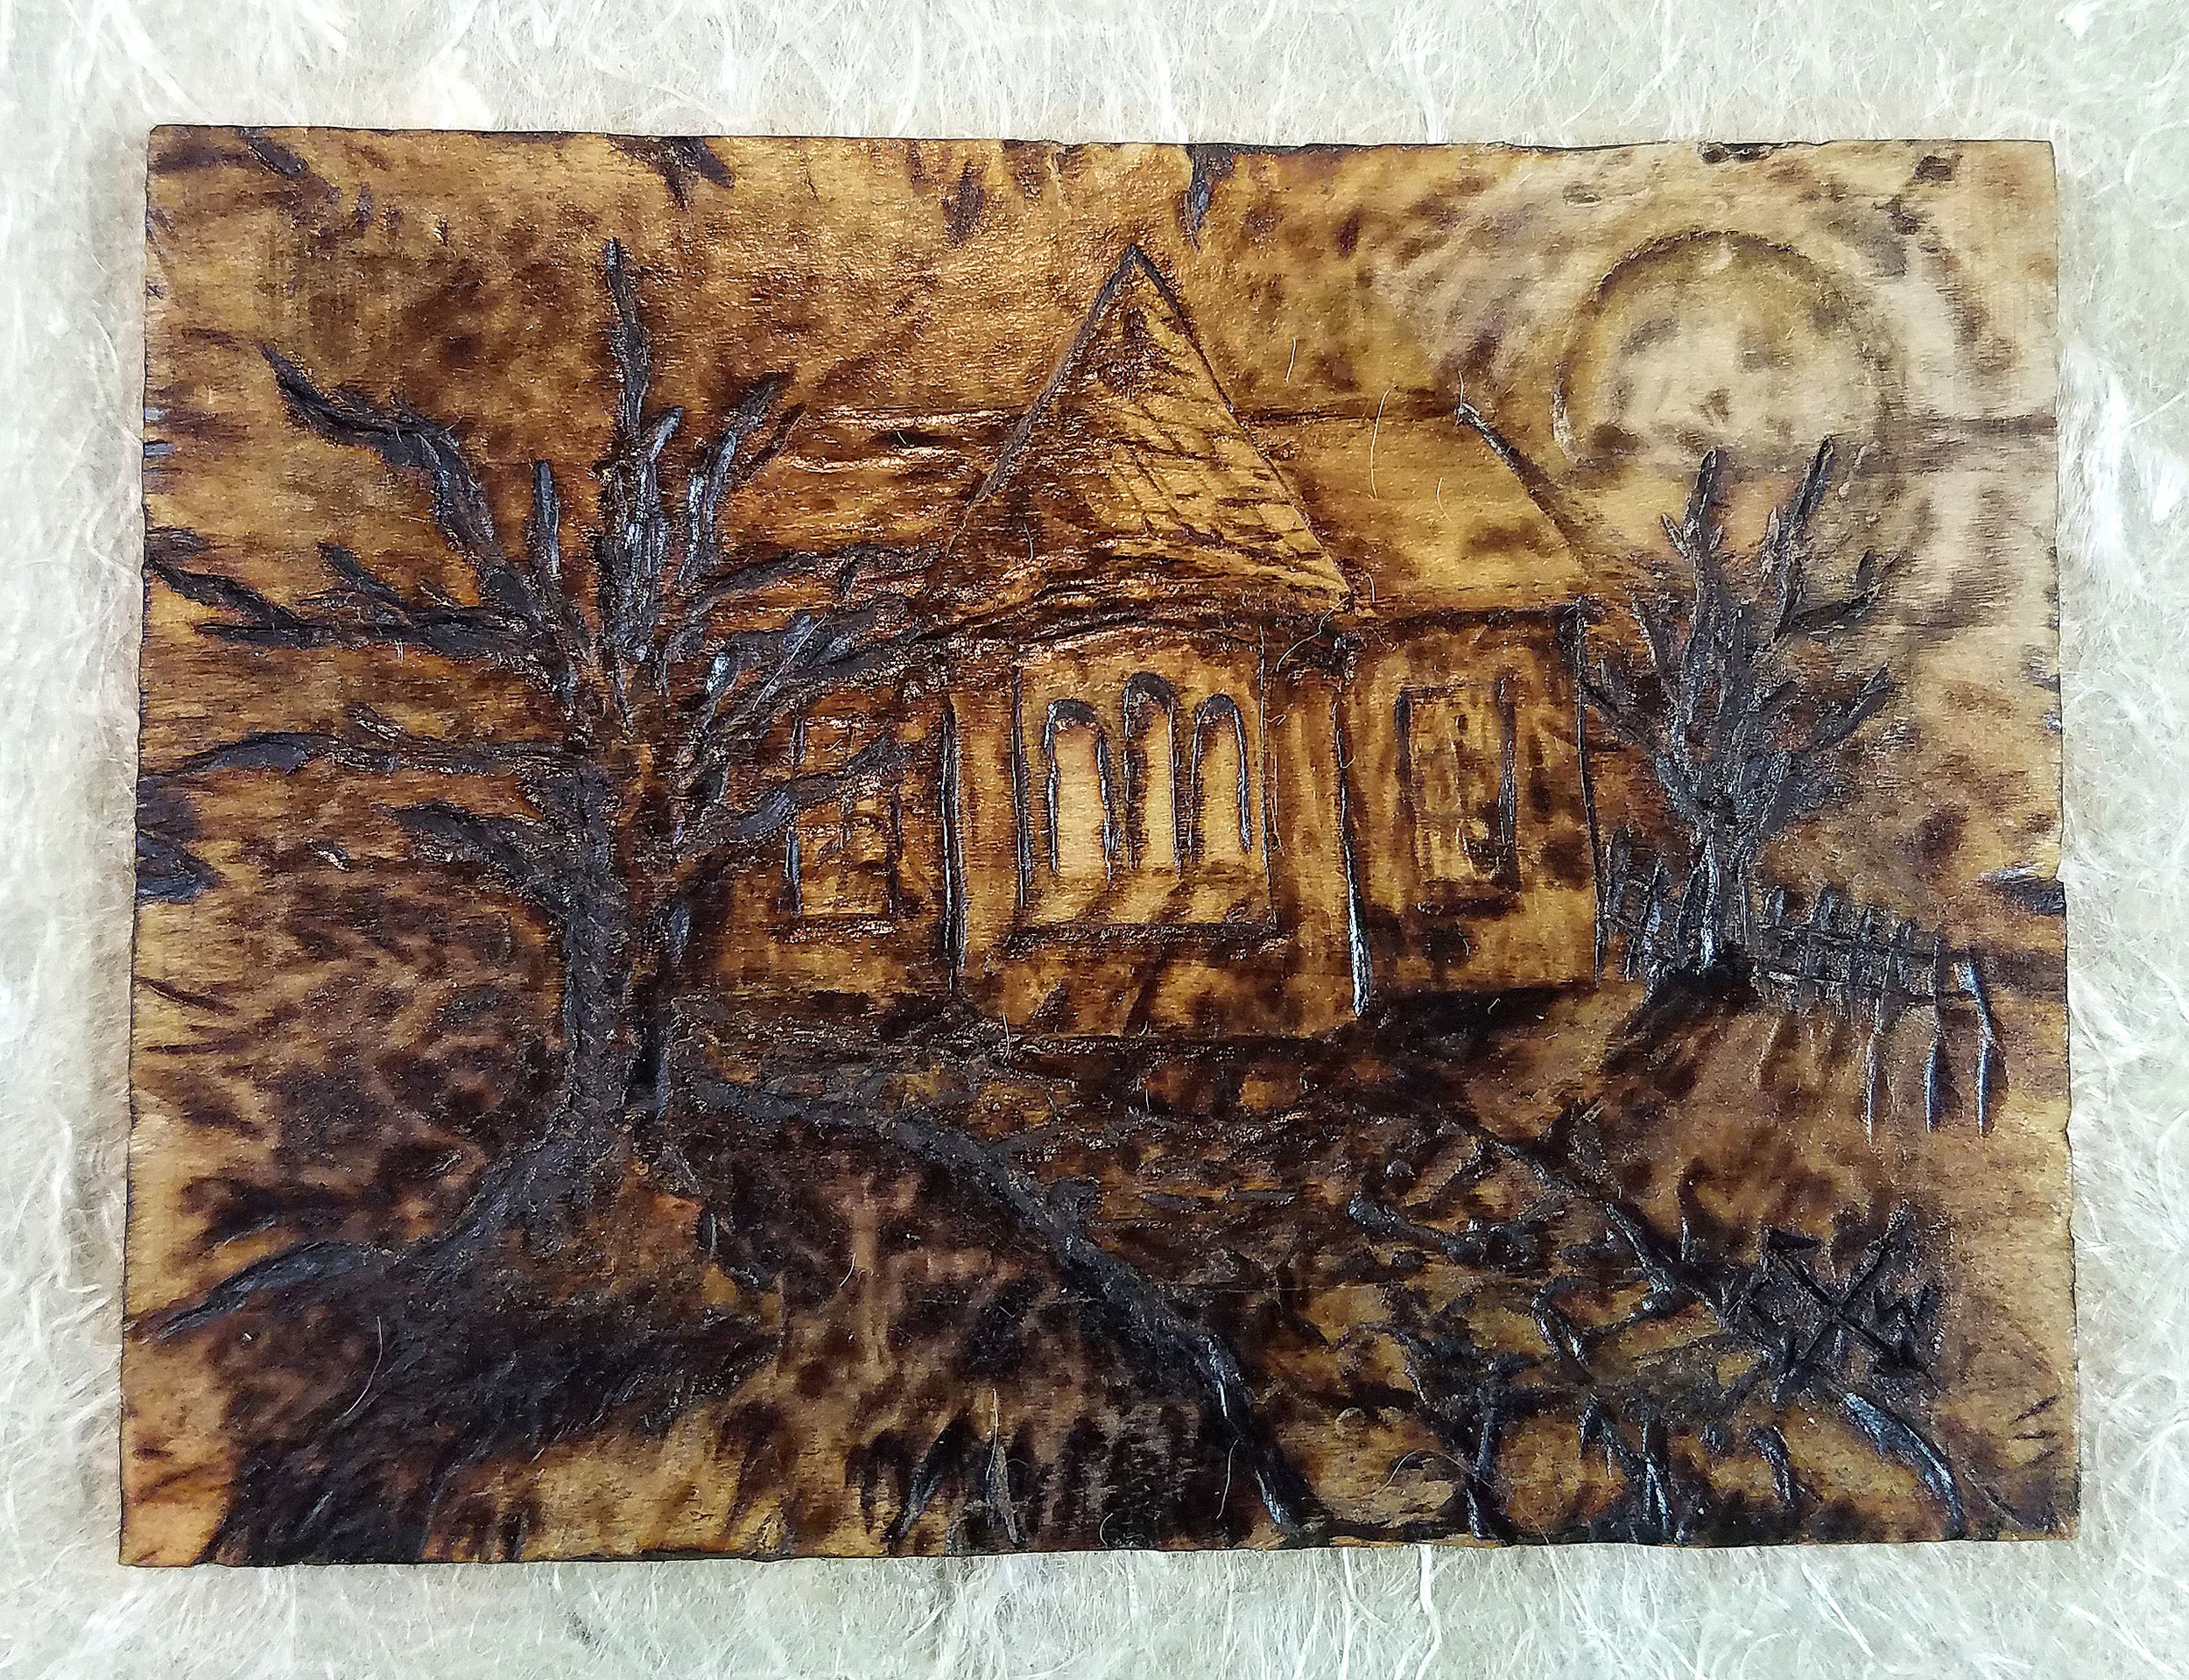 """Thoughts of Home"" - pyrography on Poplar plank mounted on handmade paper."